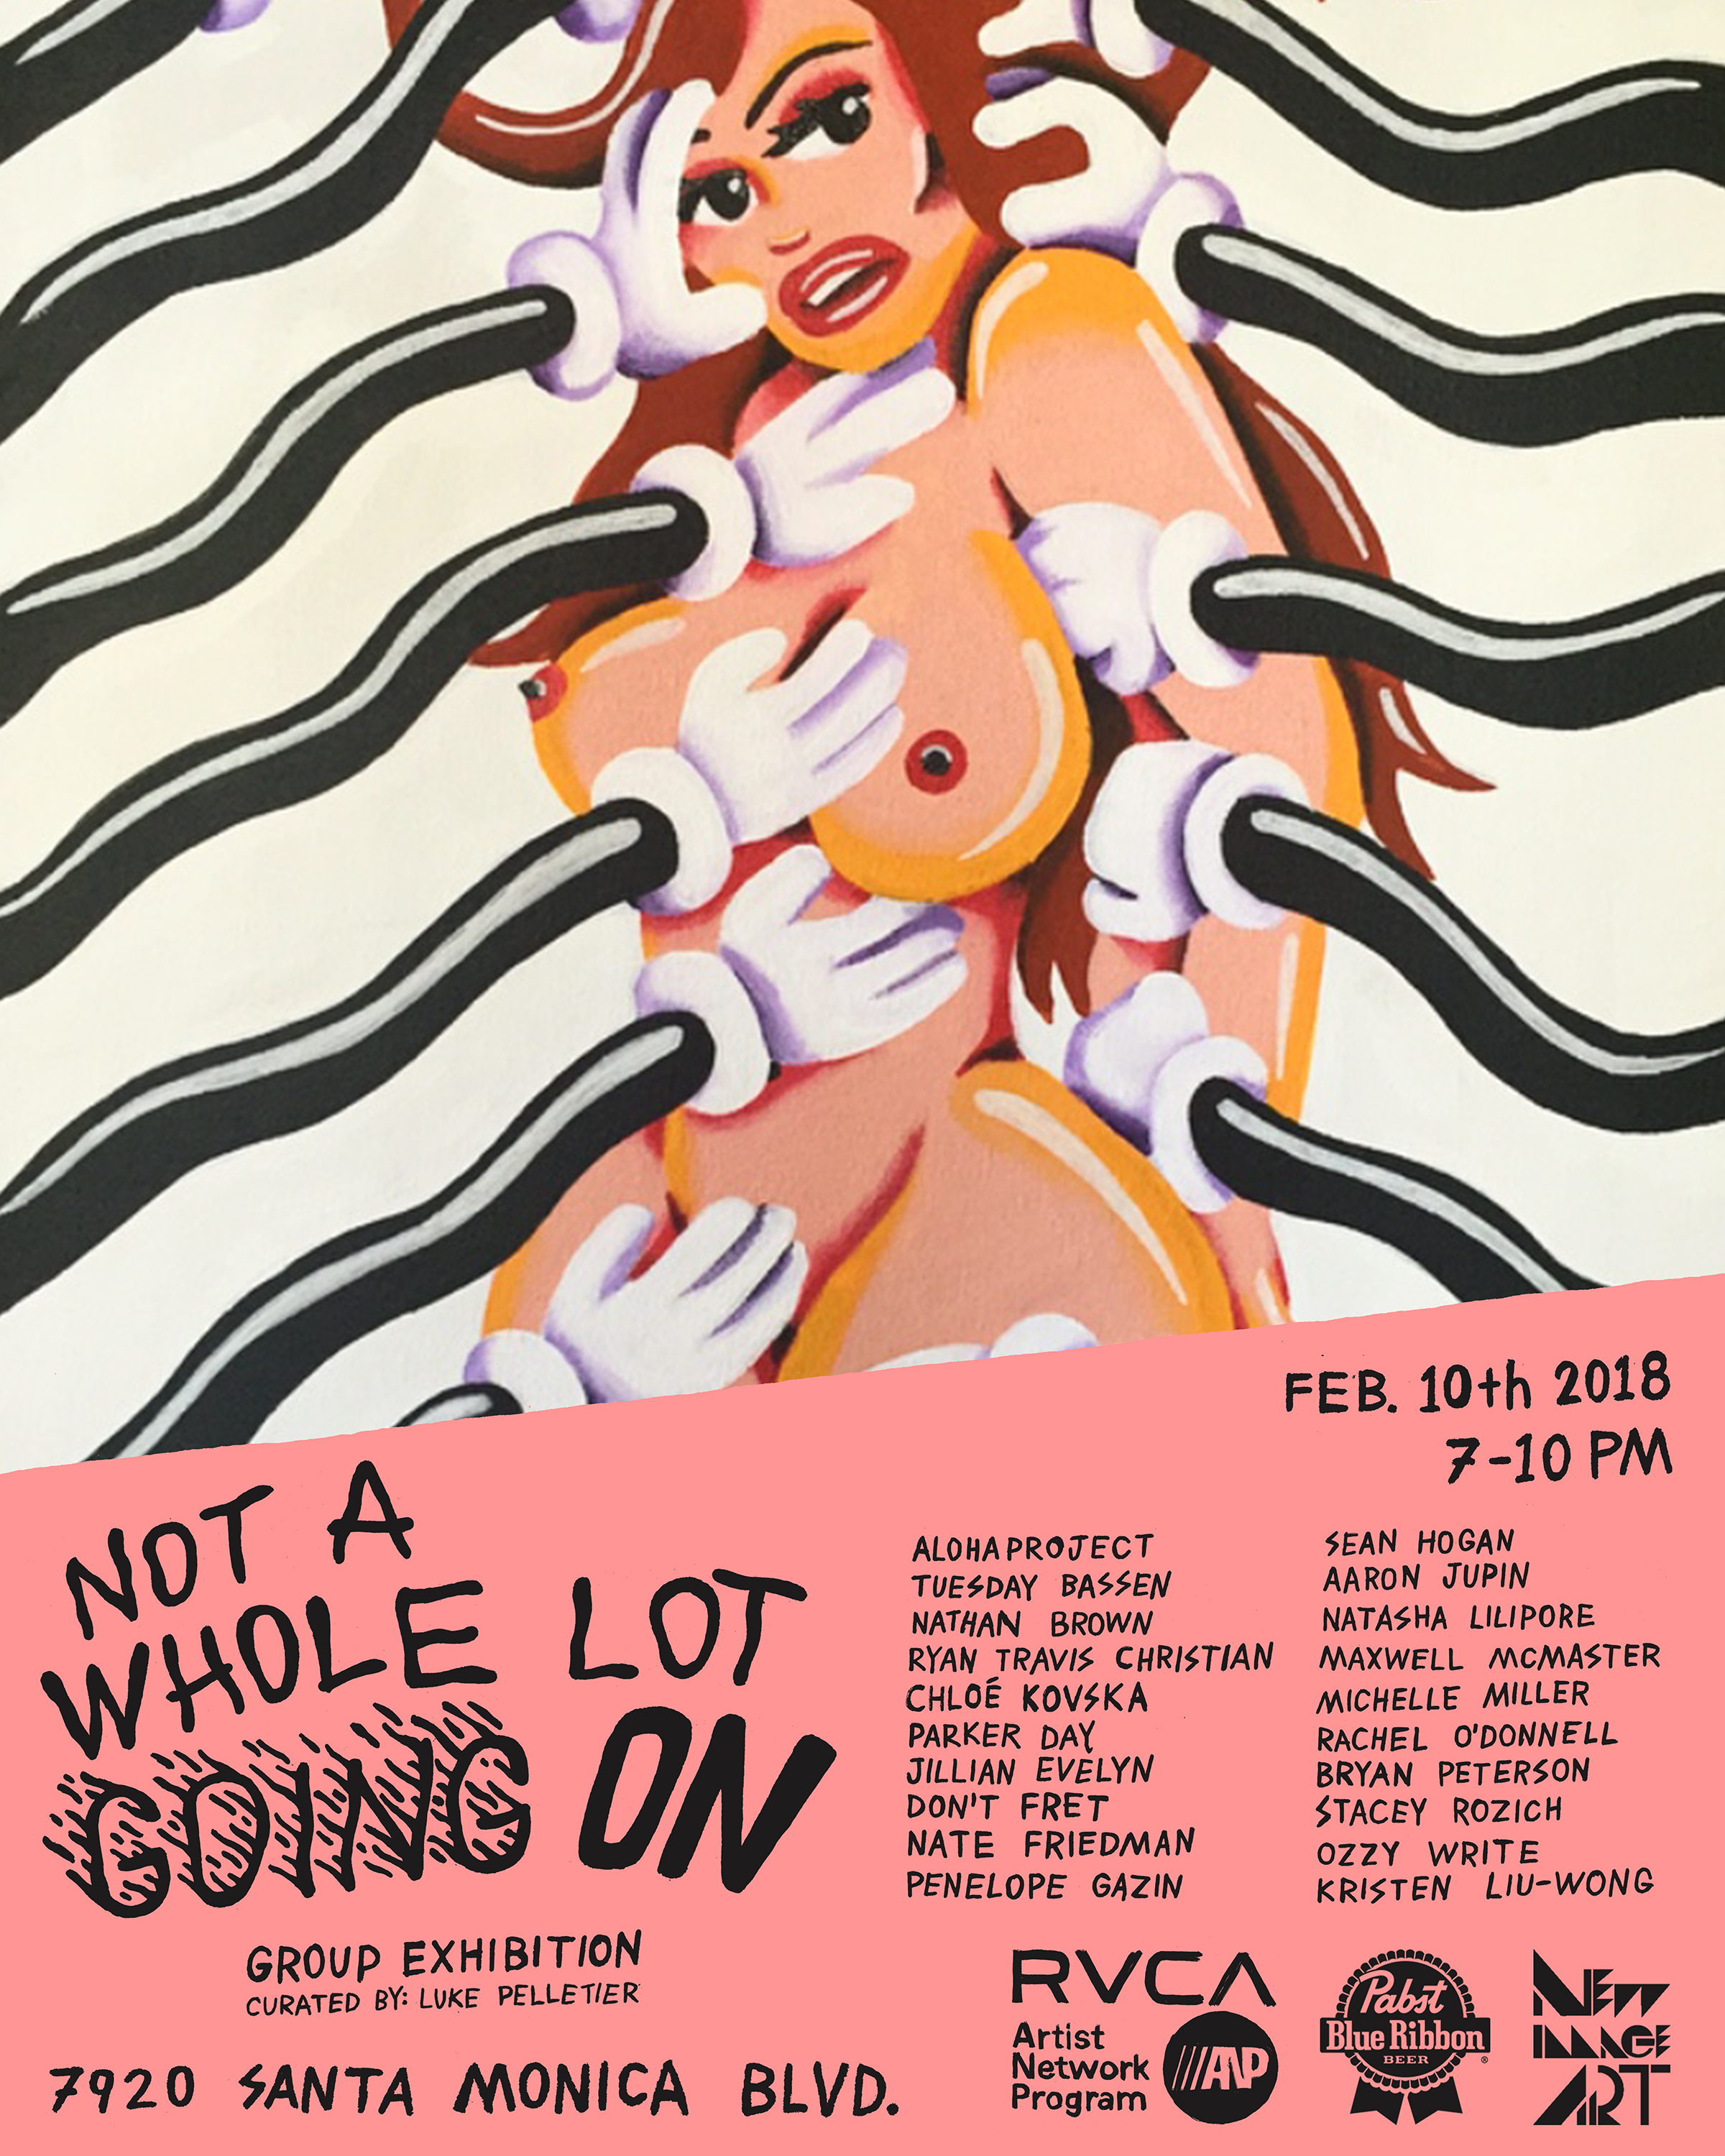 GROUP EXHIBITION - NOT A WHOLE LOT GOING ON